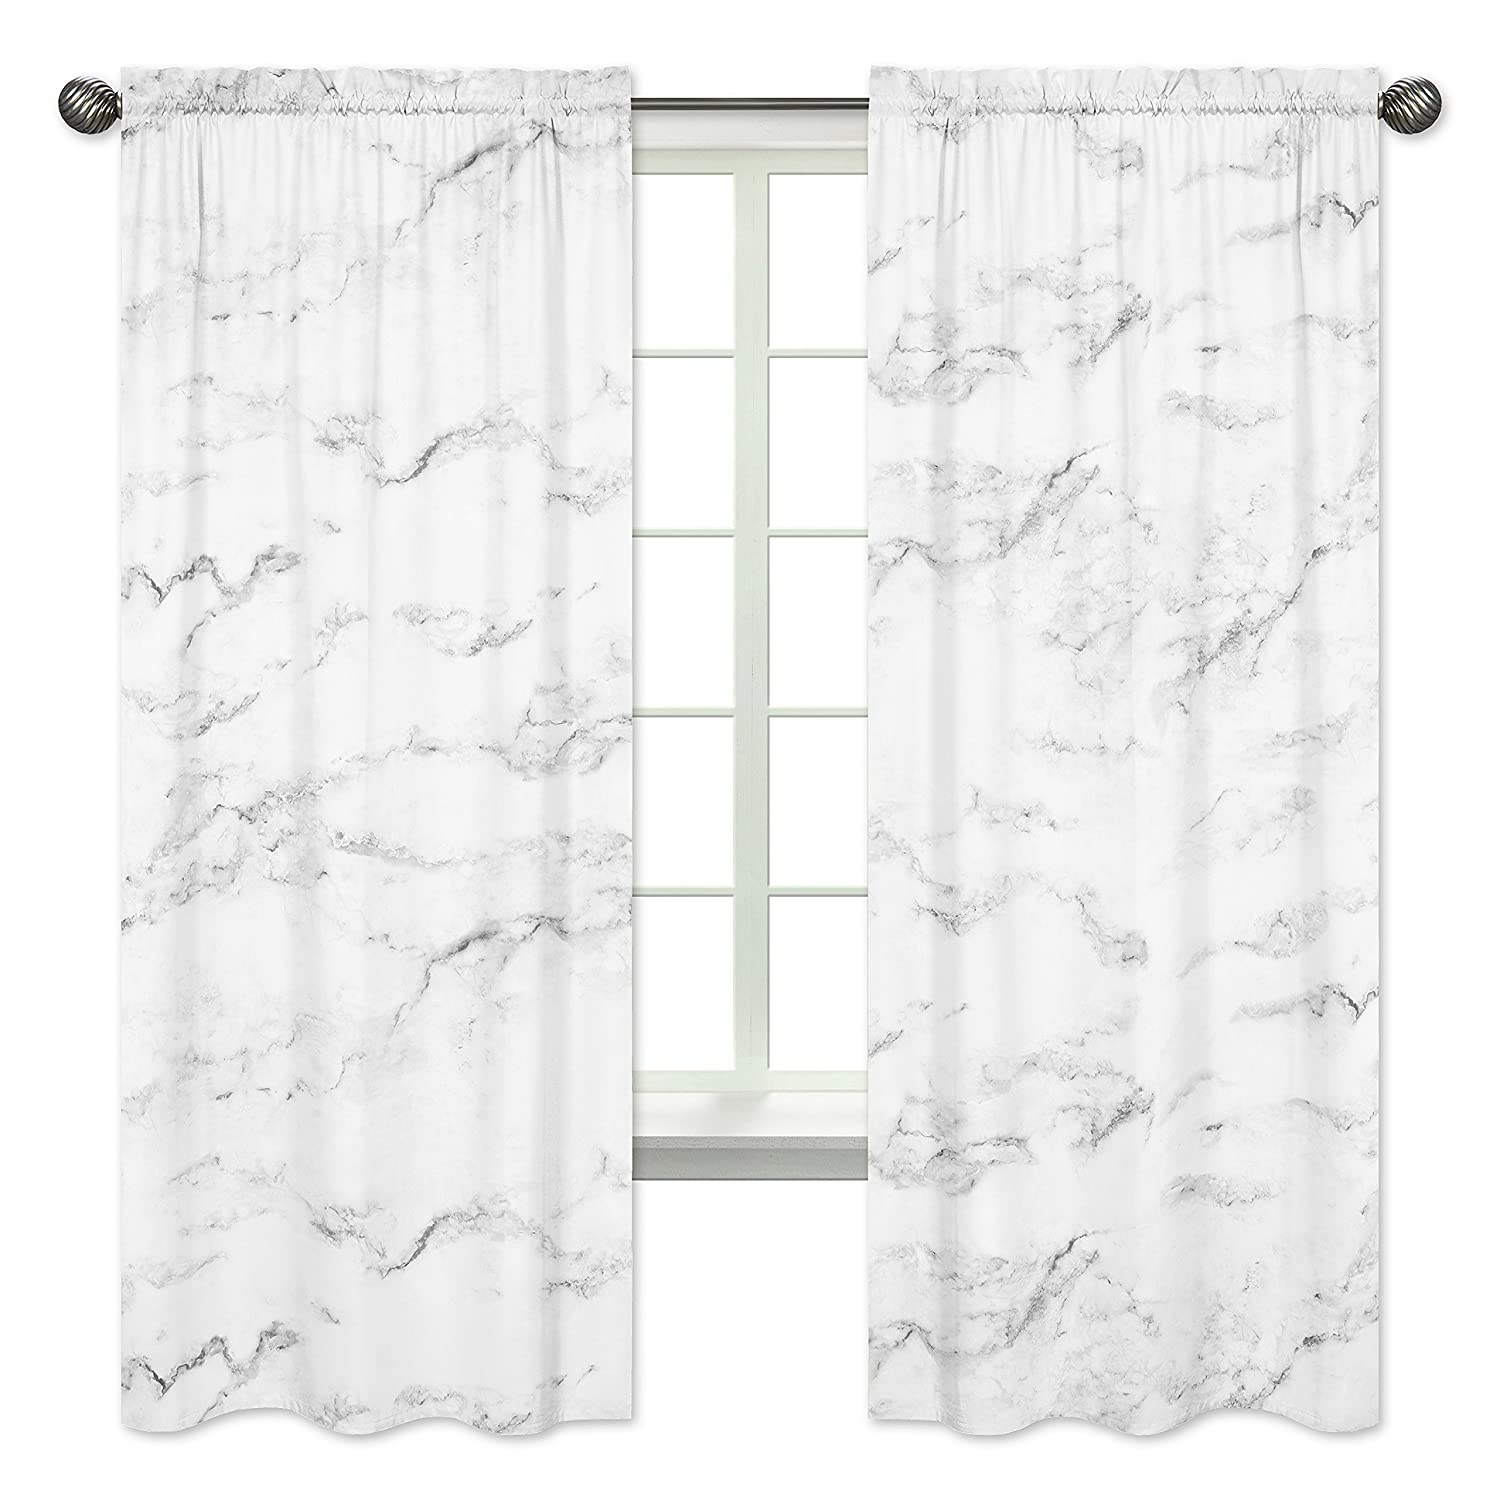 Marble Room Darkening Curtain Slow Fluid Abstract Art Blackout Curtain for Bedroom for Kids Women Adults Traditional Blue Marbling Pattern Thermal Curtain Luxury Blackout Drapes,38 X 45 Inch,2 Panels